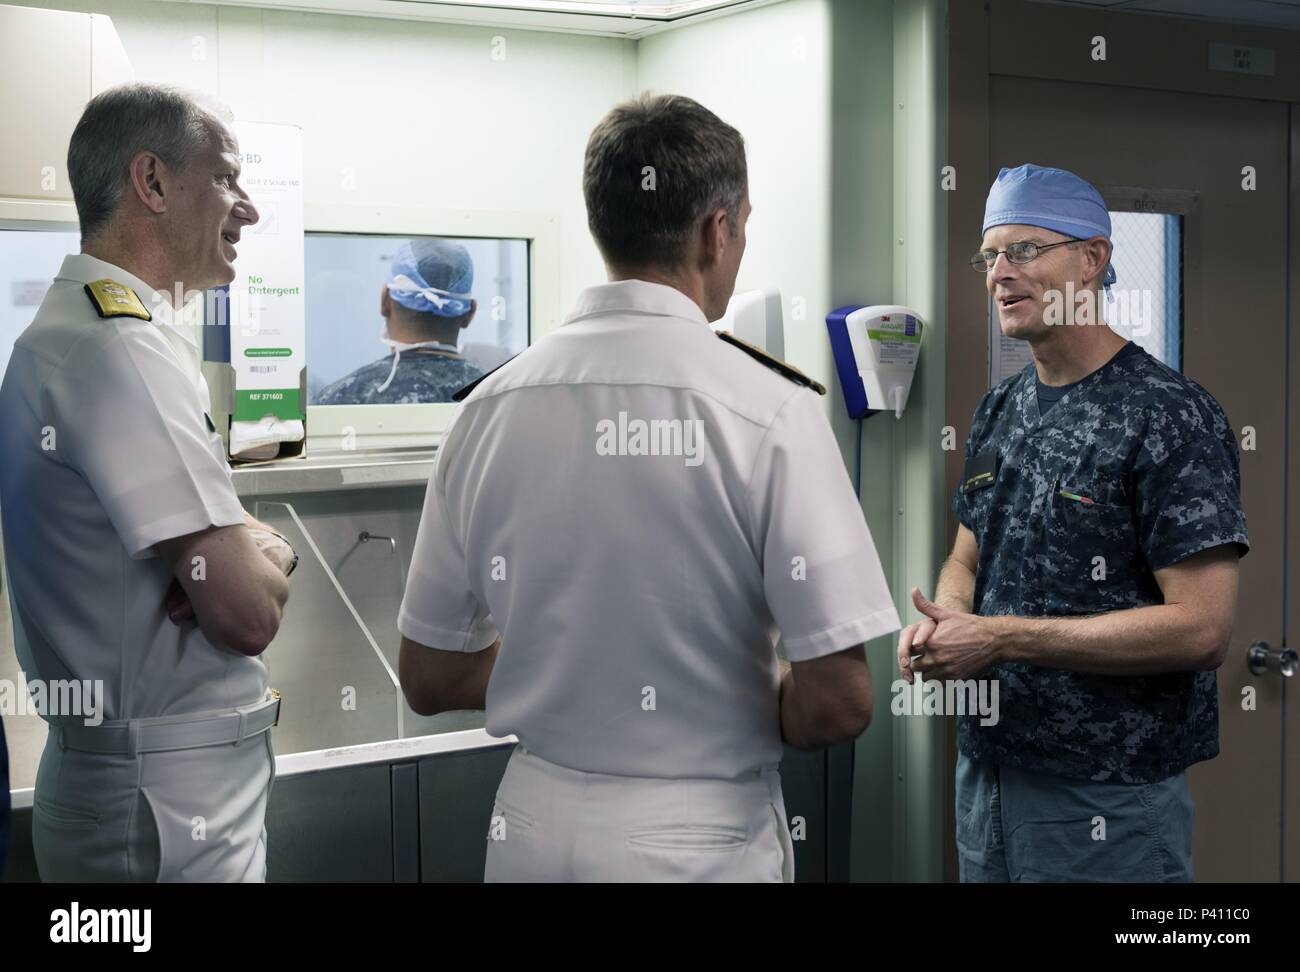 Photograph of three Navy officers, one wearing surgical scrubs, speaking with each other onboard the hospital ship USNS Mercy, in the waters off of Nha Trang, Vietnam, May 23, 2018. () Stock Photo